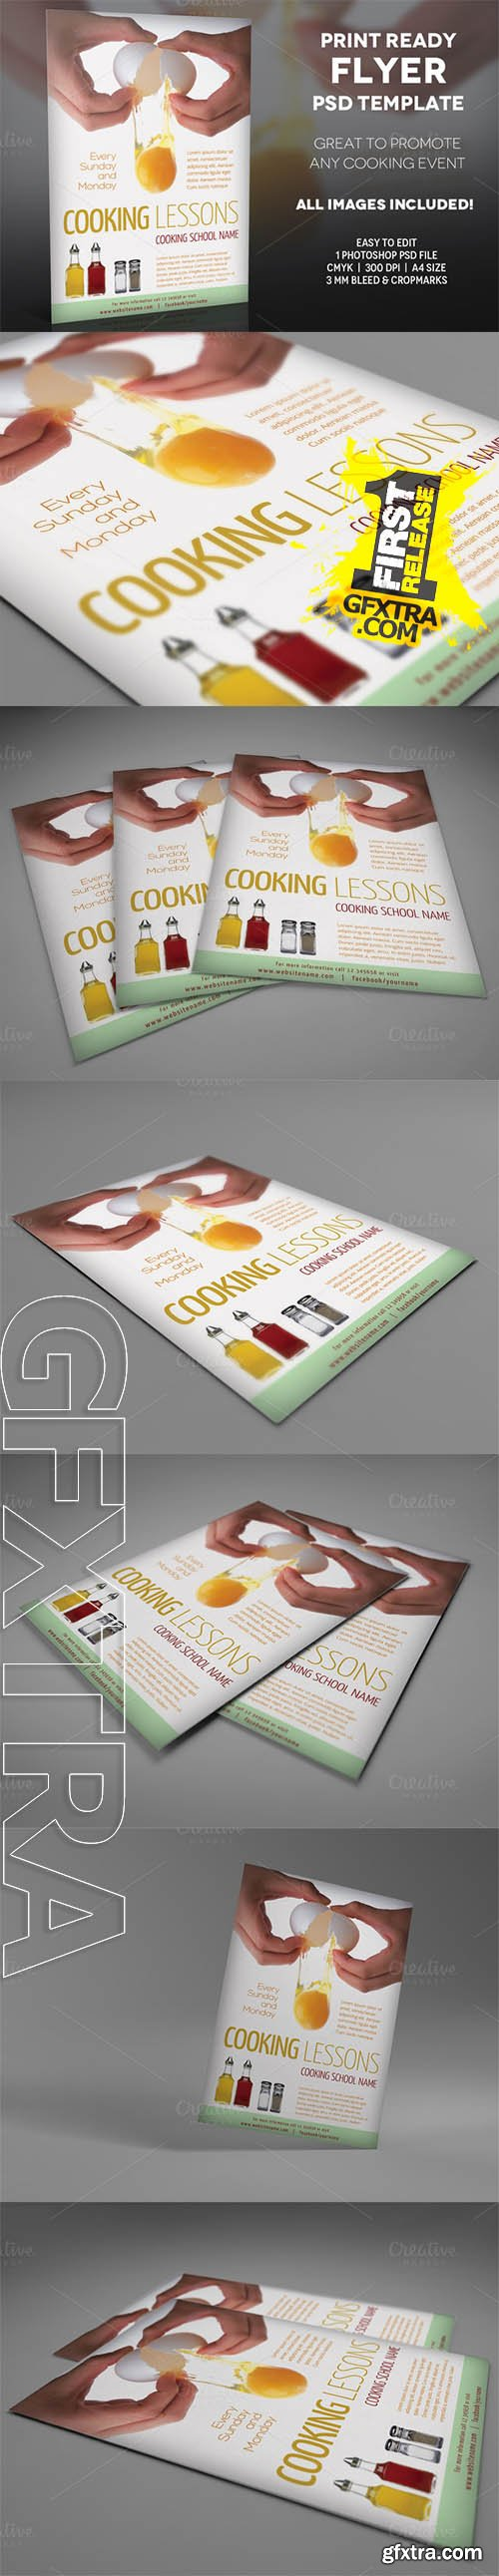 Cooking Lessons 2 - A4 Flyer Template - CM 195845